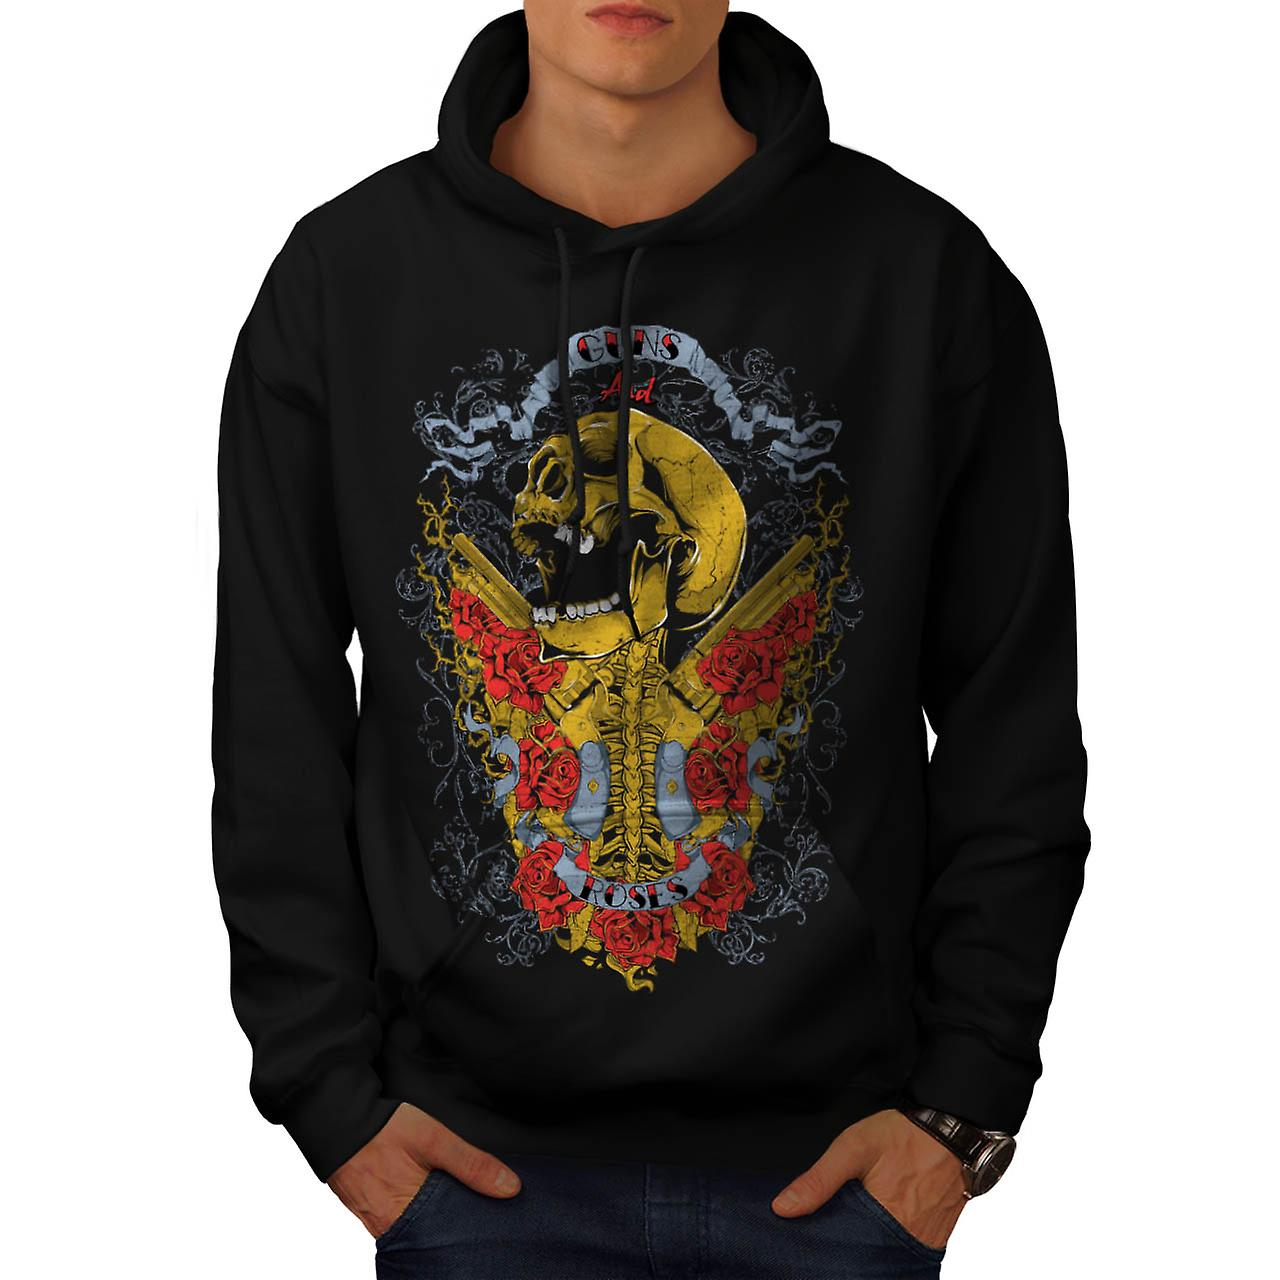 Guns And Roses Skull Music Hero Men Black Hoodie | Wellcoda